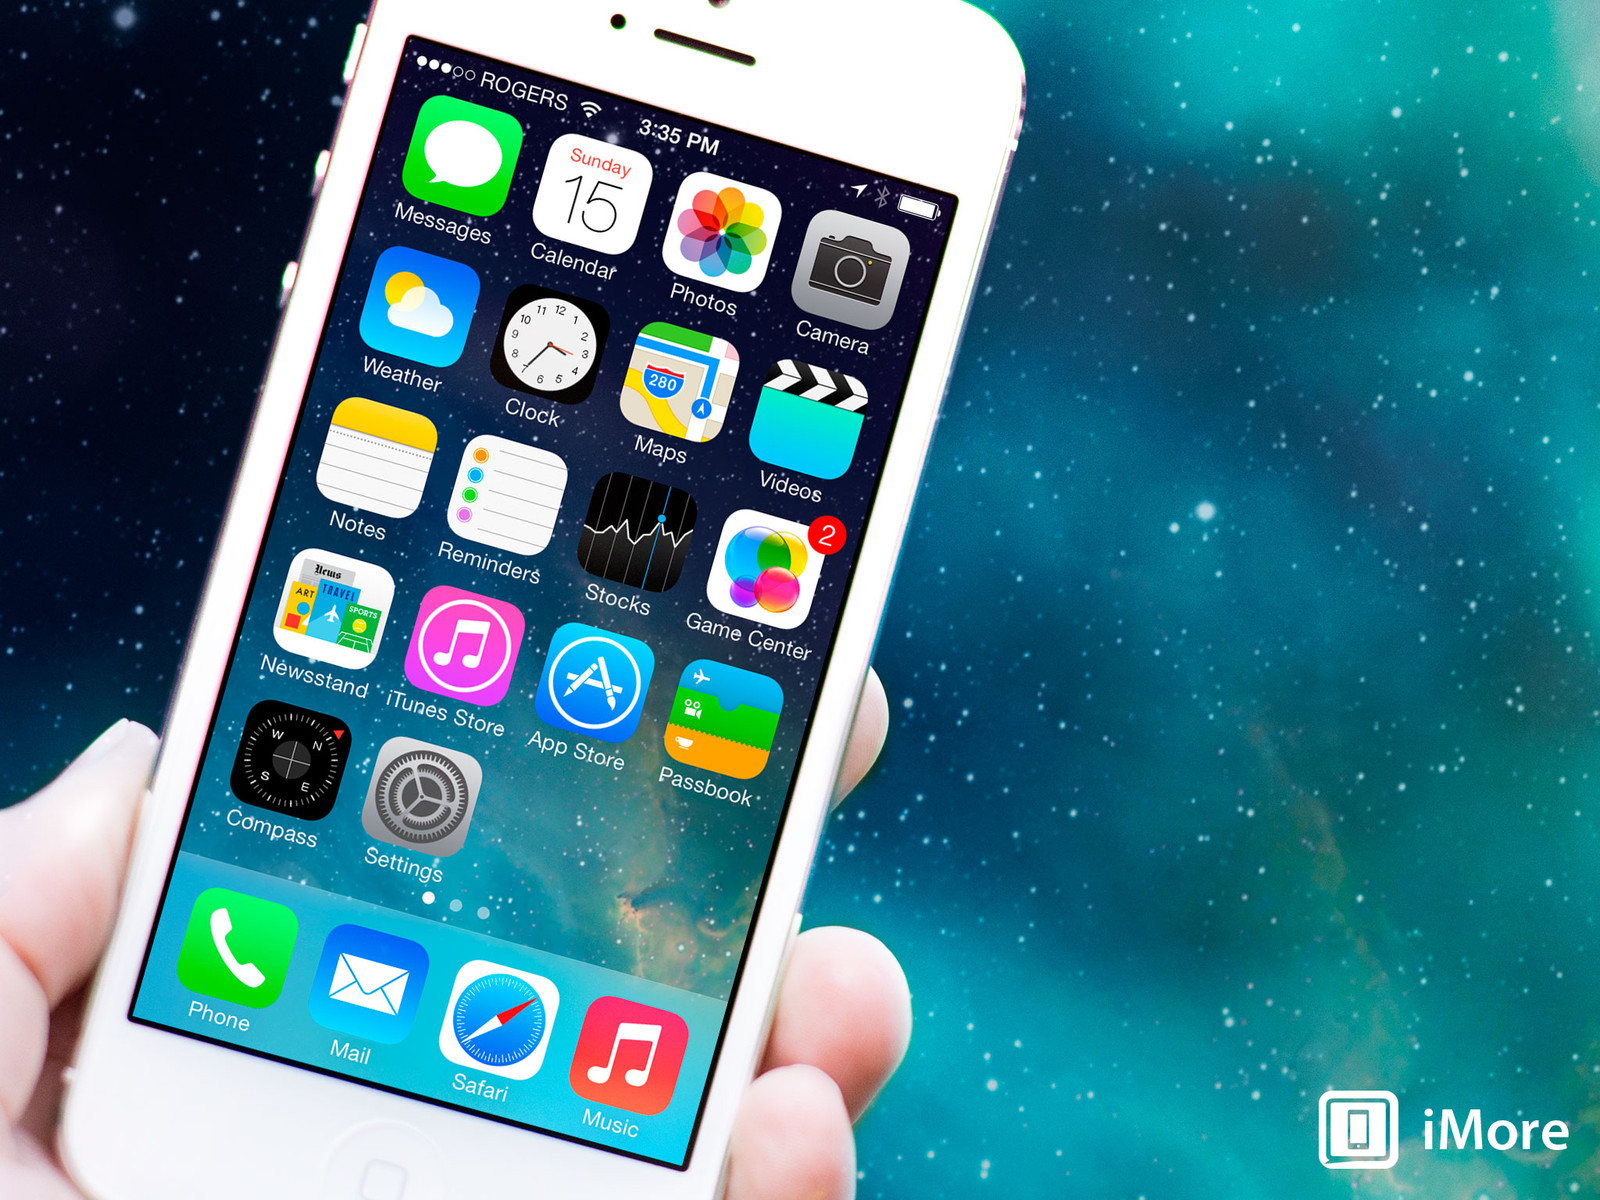 How to update your iPhone or iPad to iOS 7.1 over-the-air (OTA)